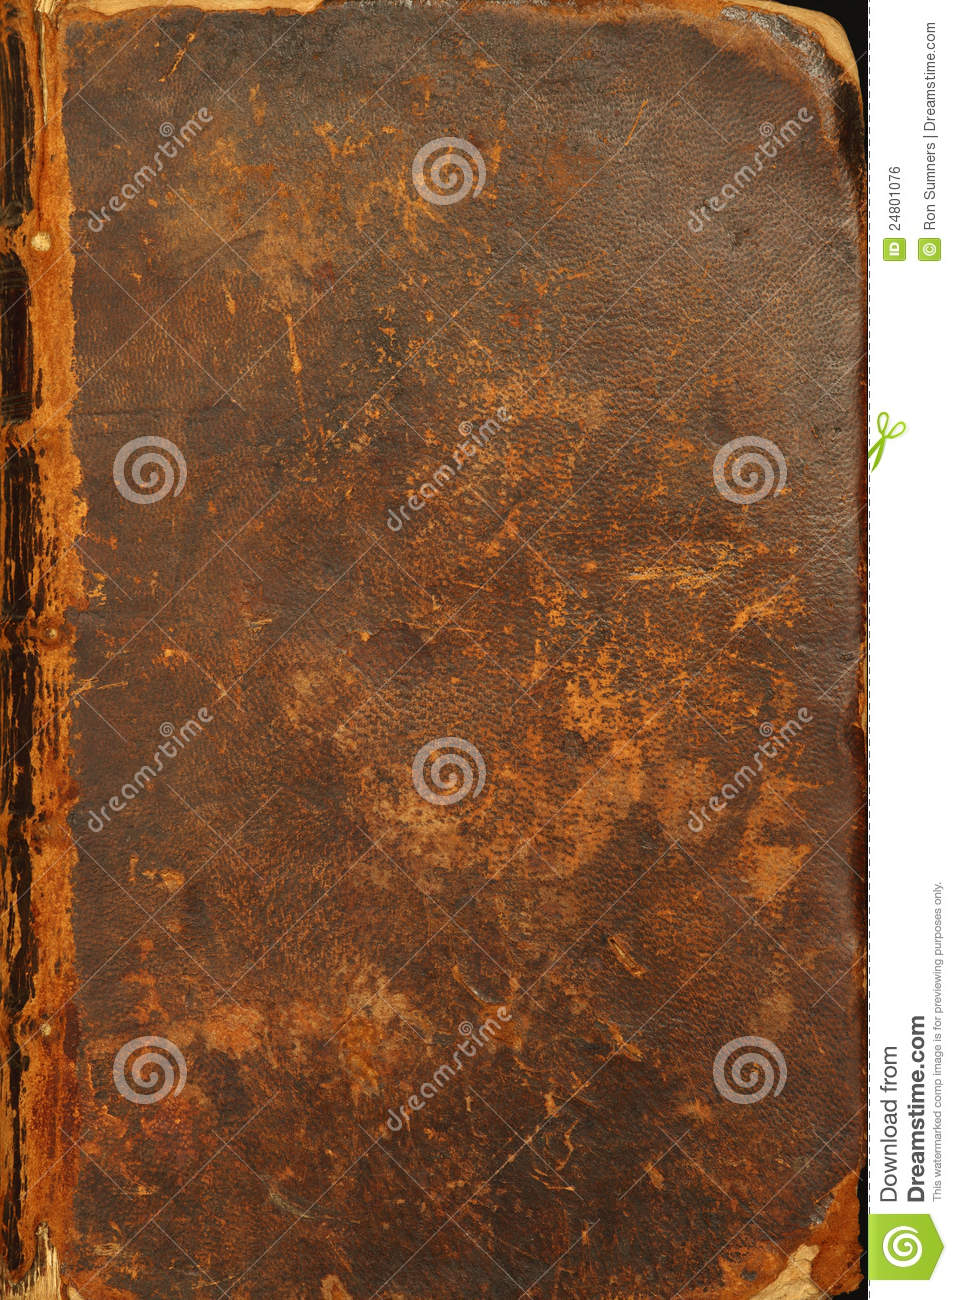 Vintage Leather Look Jeremiah Verse Bible Book Cover Large: Ancient Bible Cover Royalty Free Stock Image